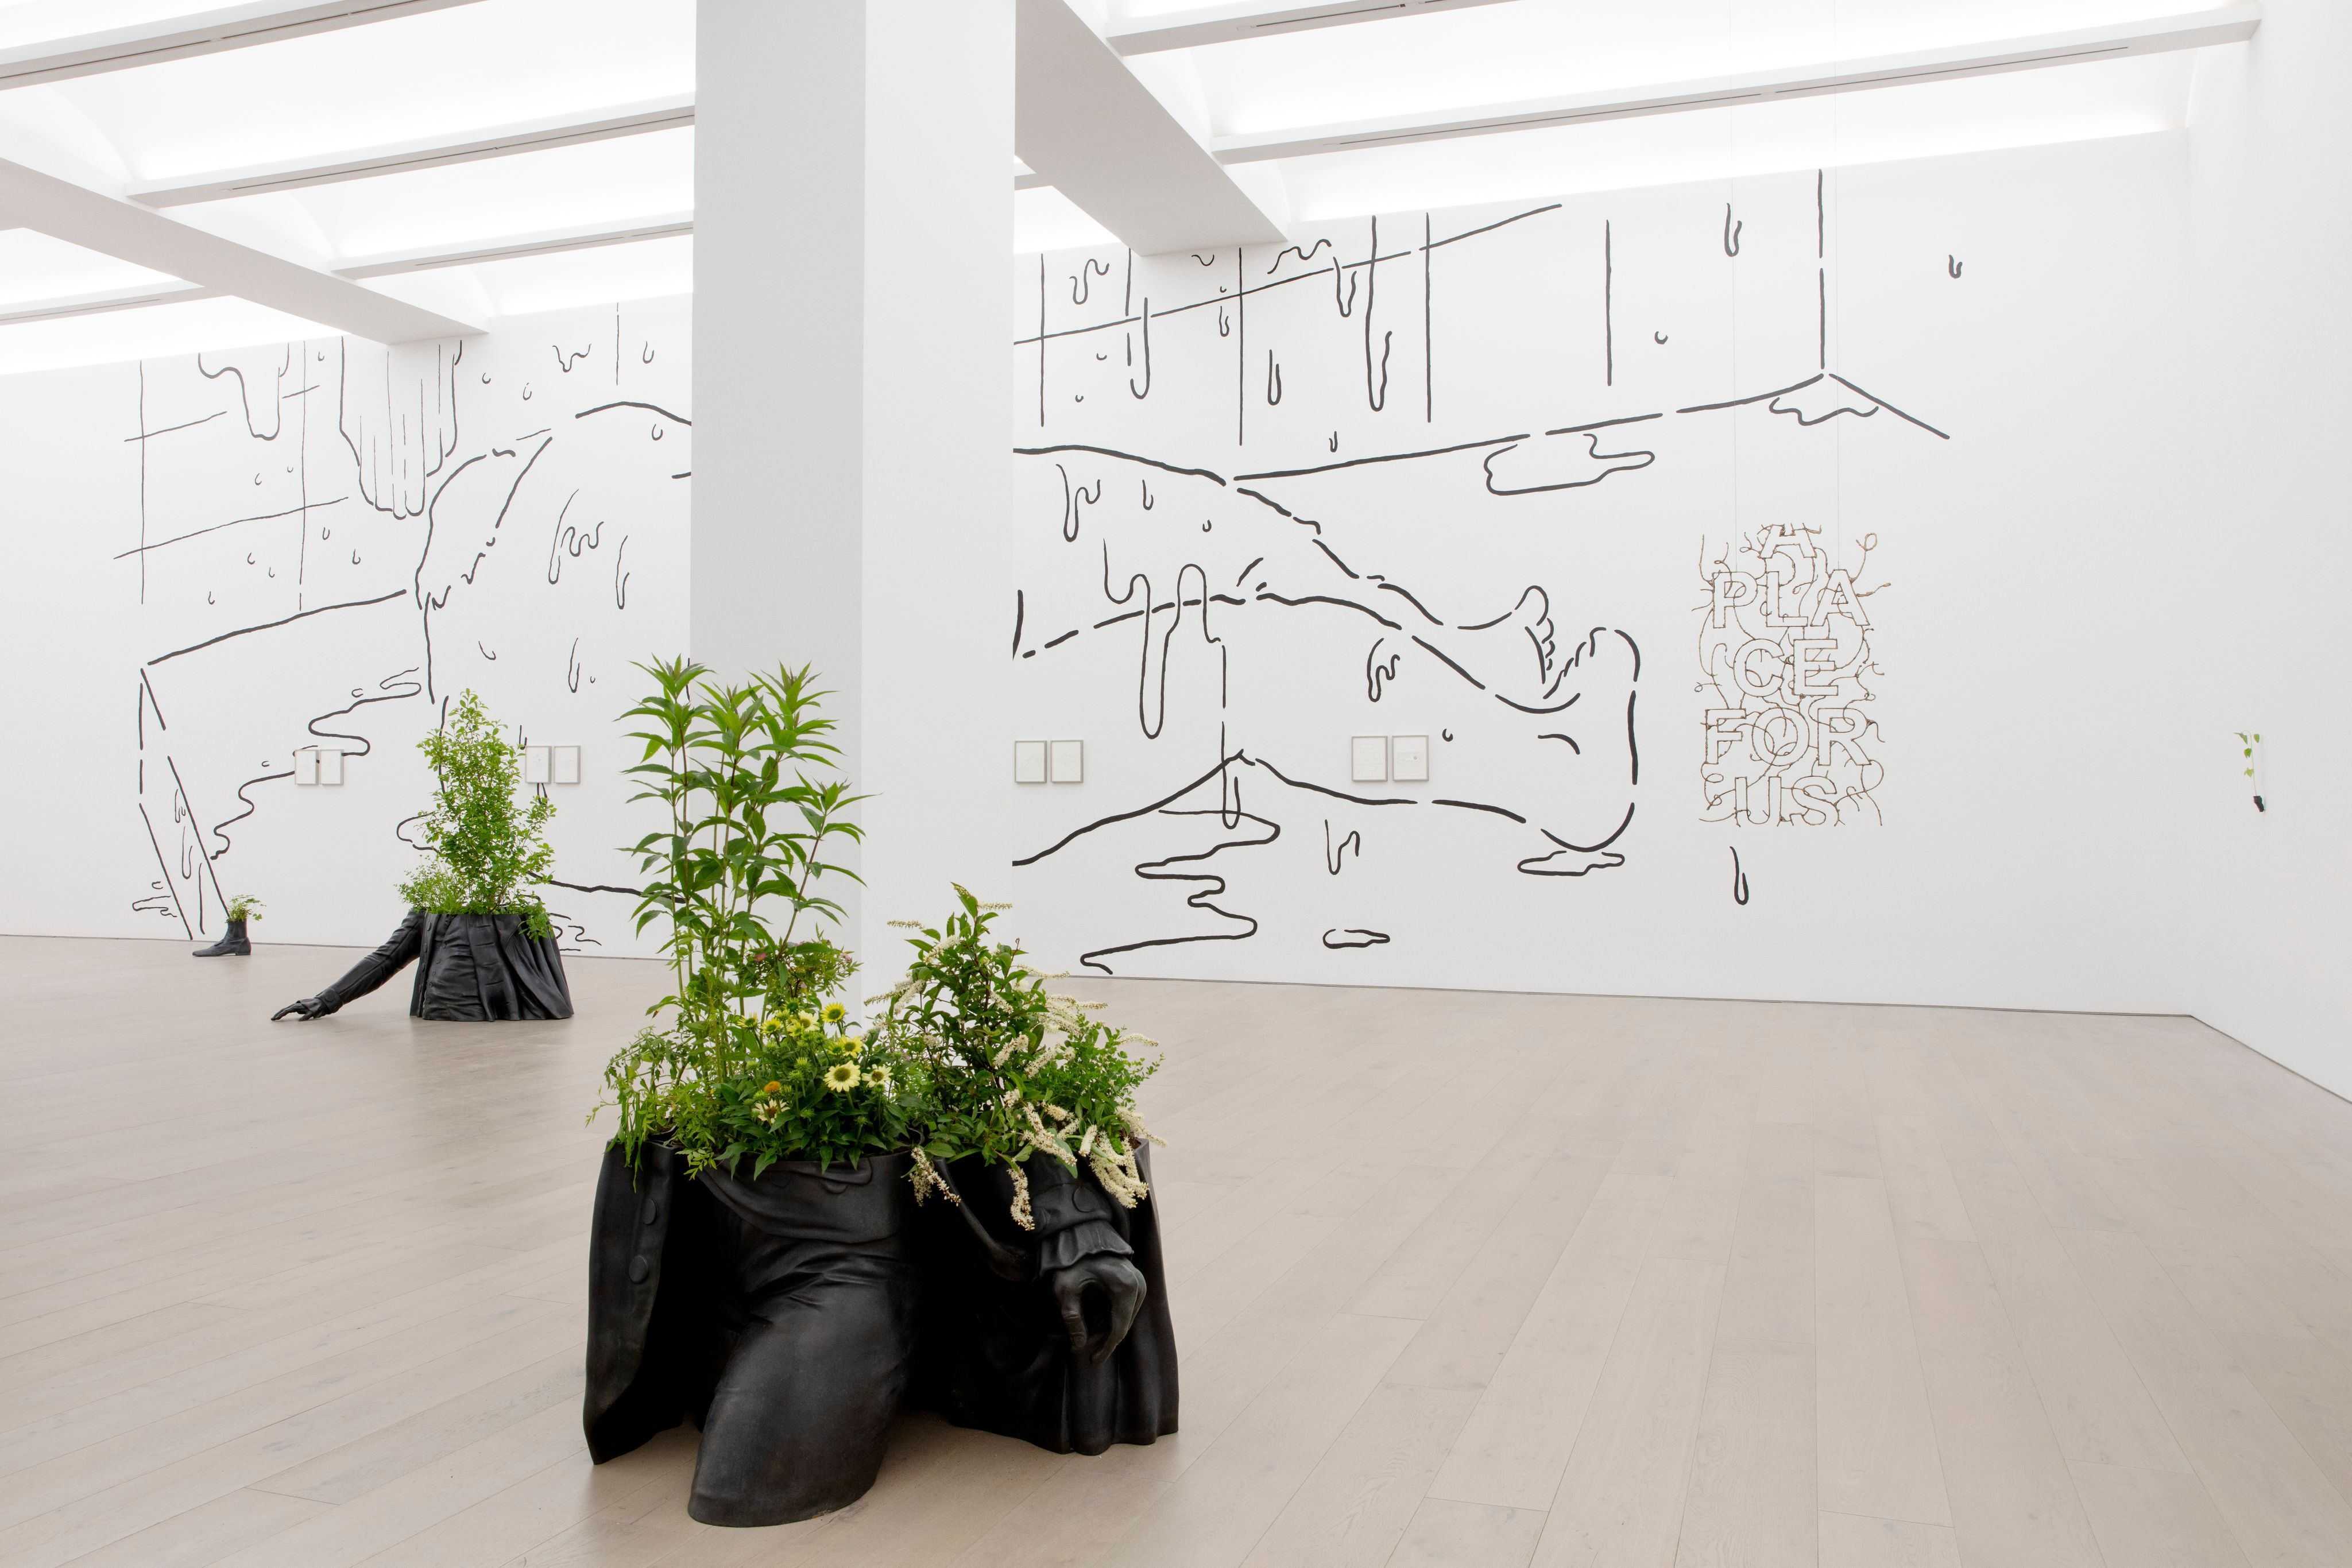 Installation View of Iván Argote: A Place For Us at Perrotin New York, 2021. Photographer: Guillaume Ziccarelli. Courtesy of the artist and Perrotin.